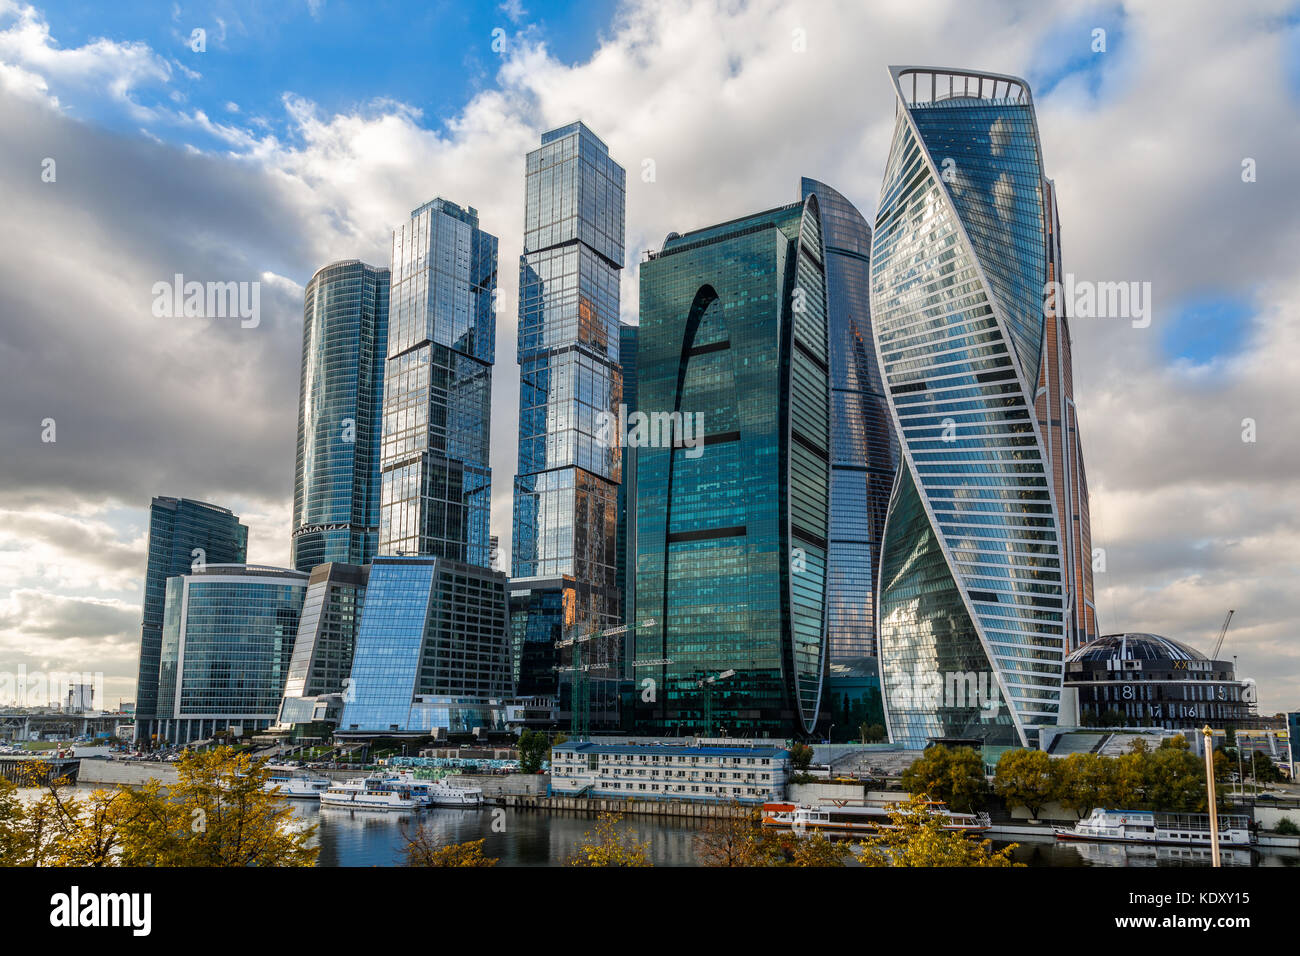 Moscow city downtown district with skyscrapers standing at the river, Russia - Stock Image